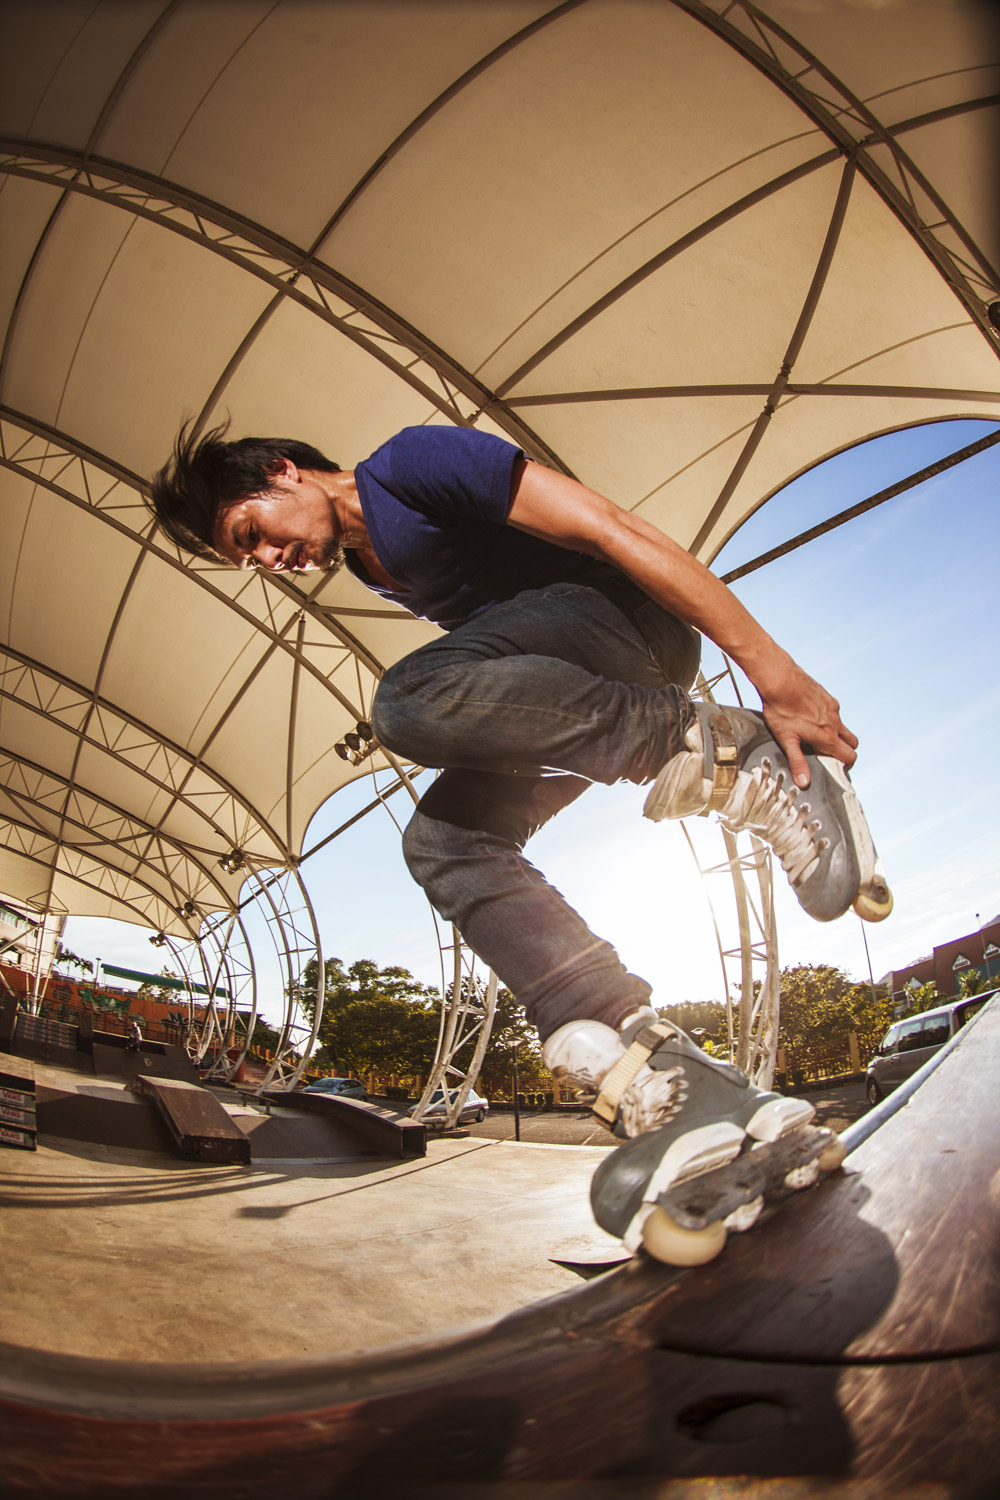 Deyna Siong Alley-oop Fish Brain on the quarter pipe at Mont Kiara Skatepark